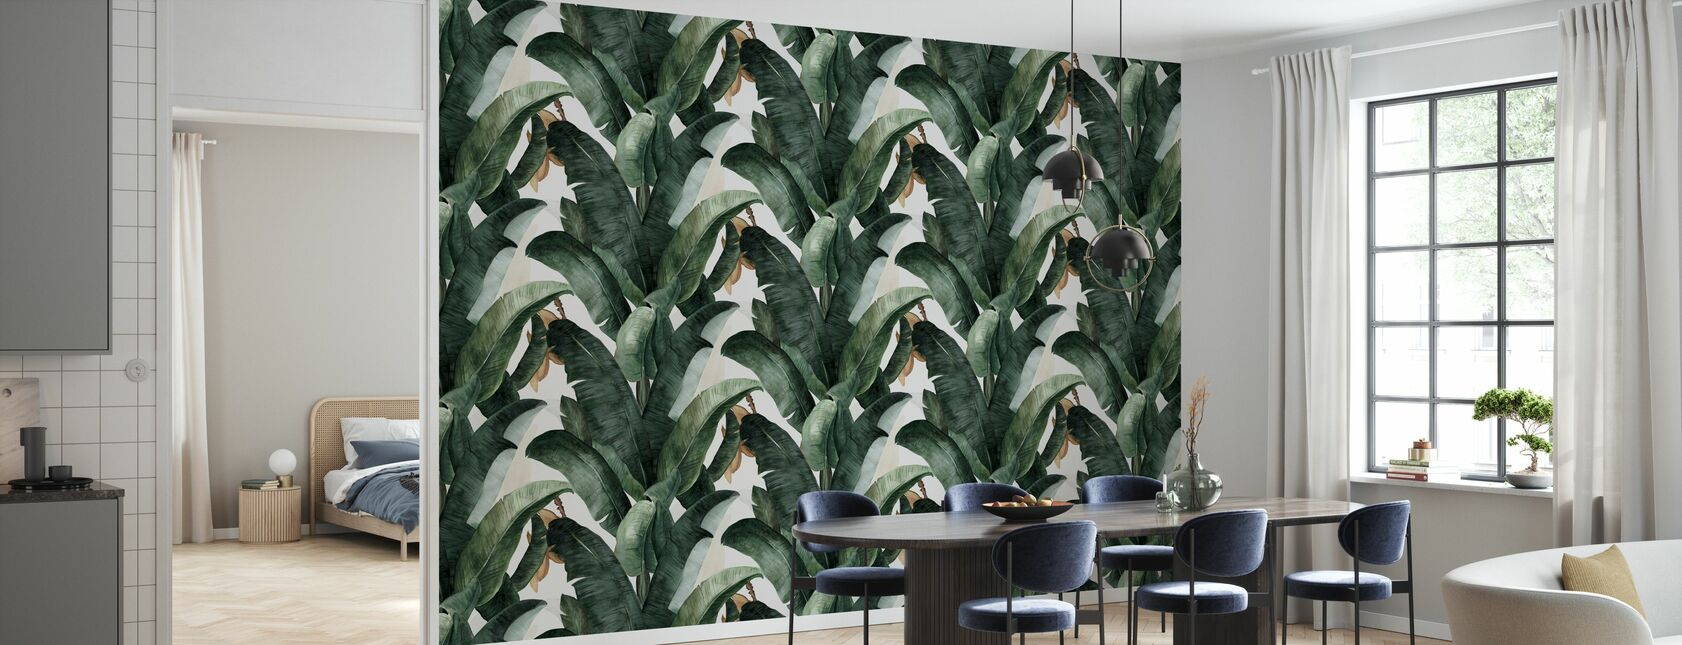 Botany Banana - Wallpaper - Kitchen